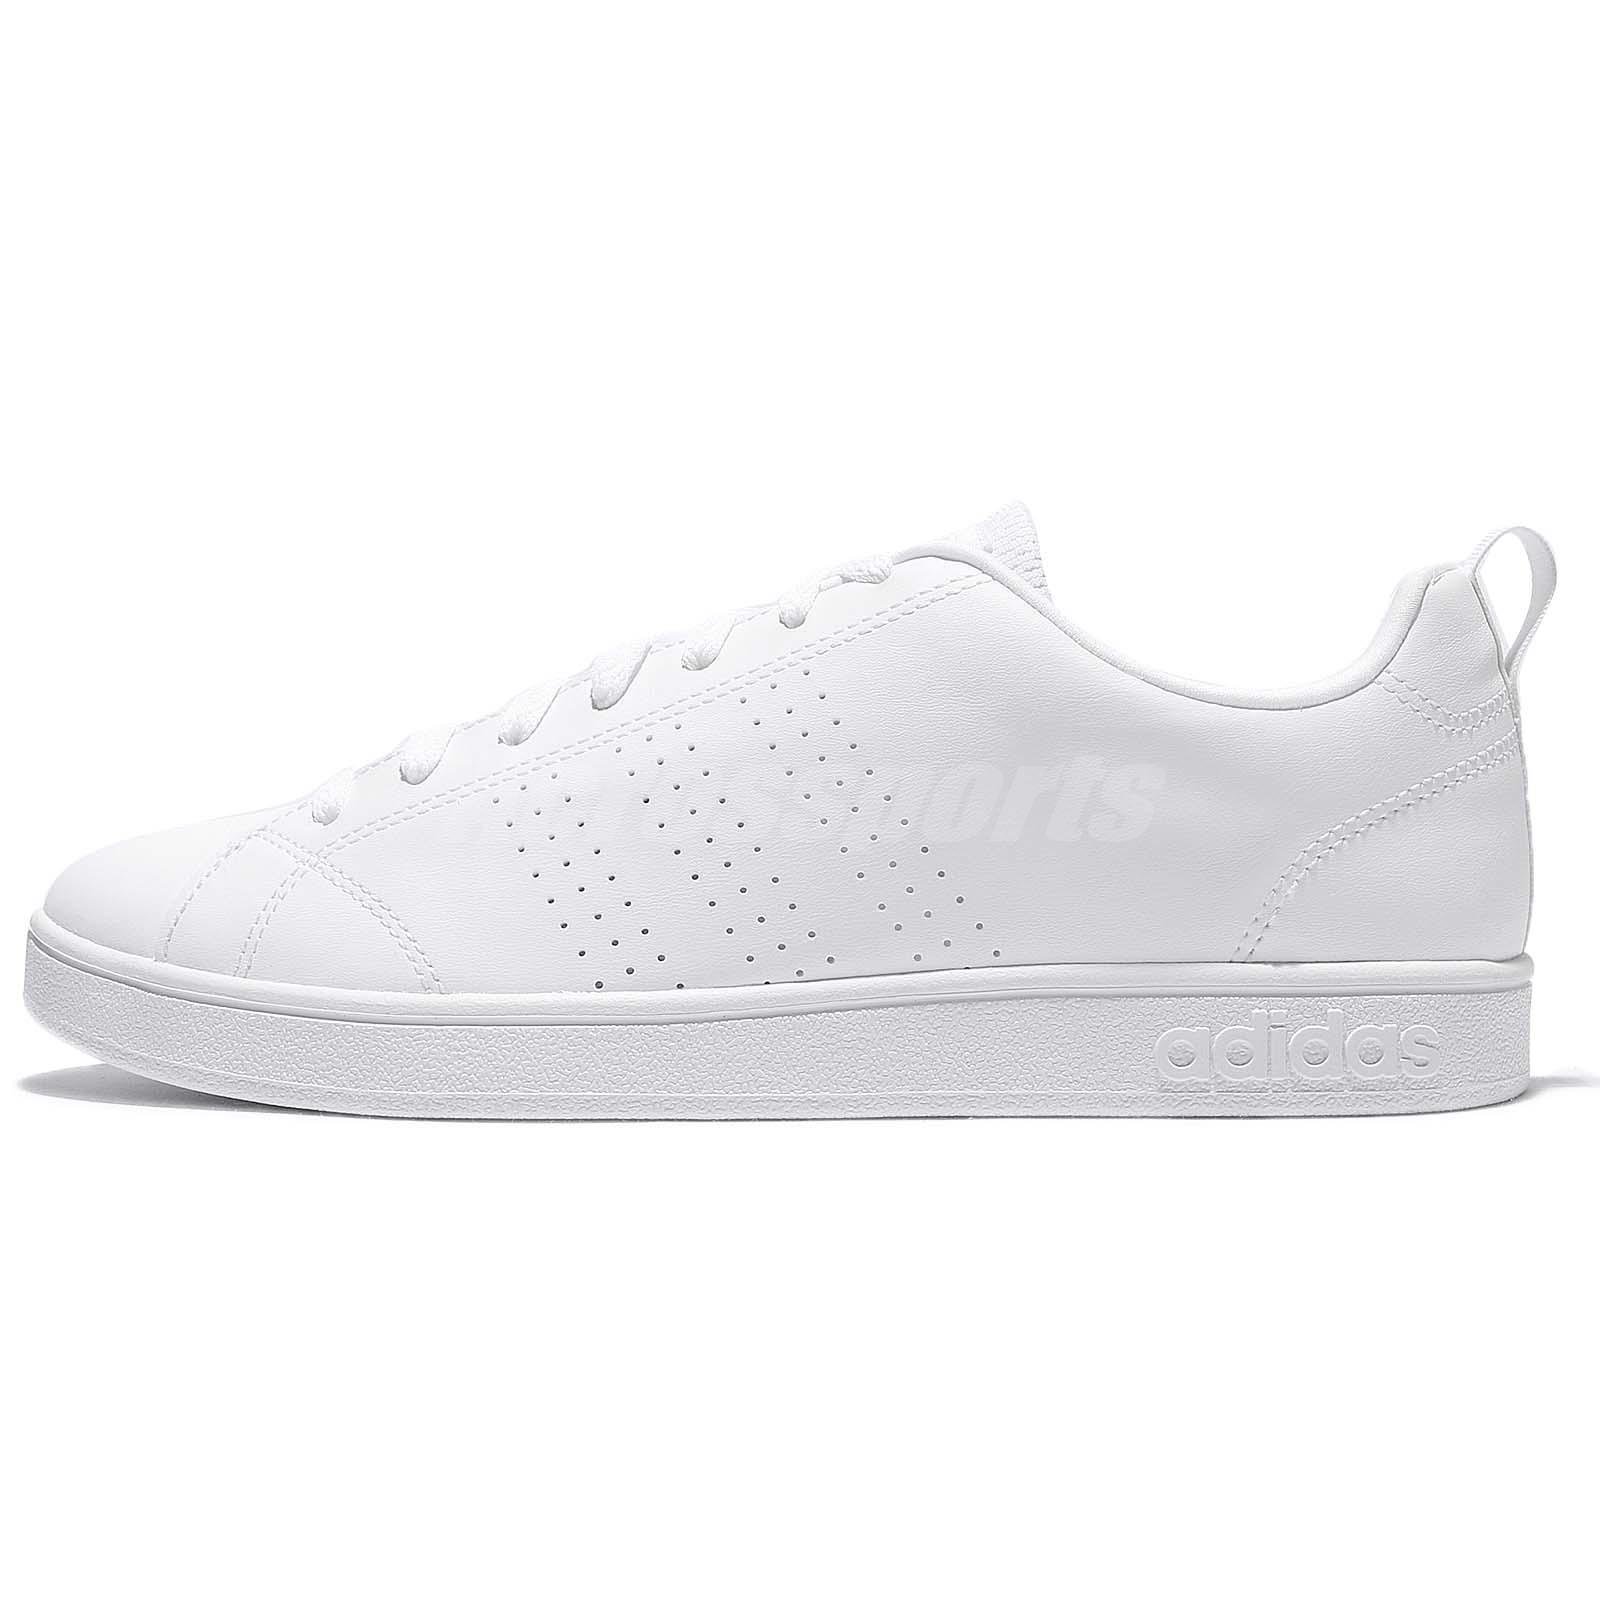 new product 58f68 8b325 adidas Neo Advantage Clean VS Triple White Men Casual Shoes Sneakers B74685